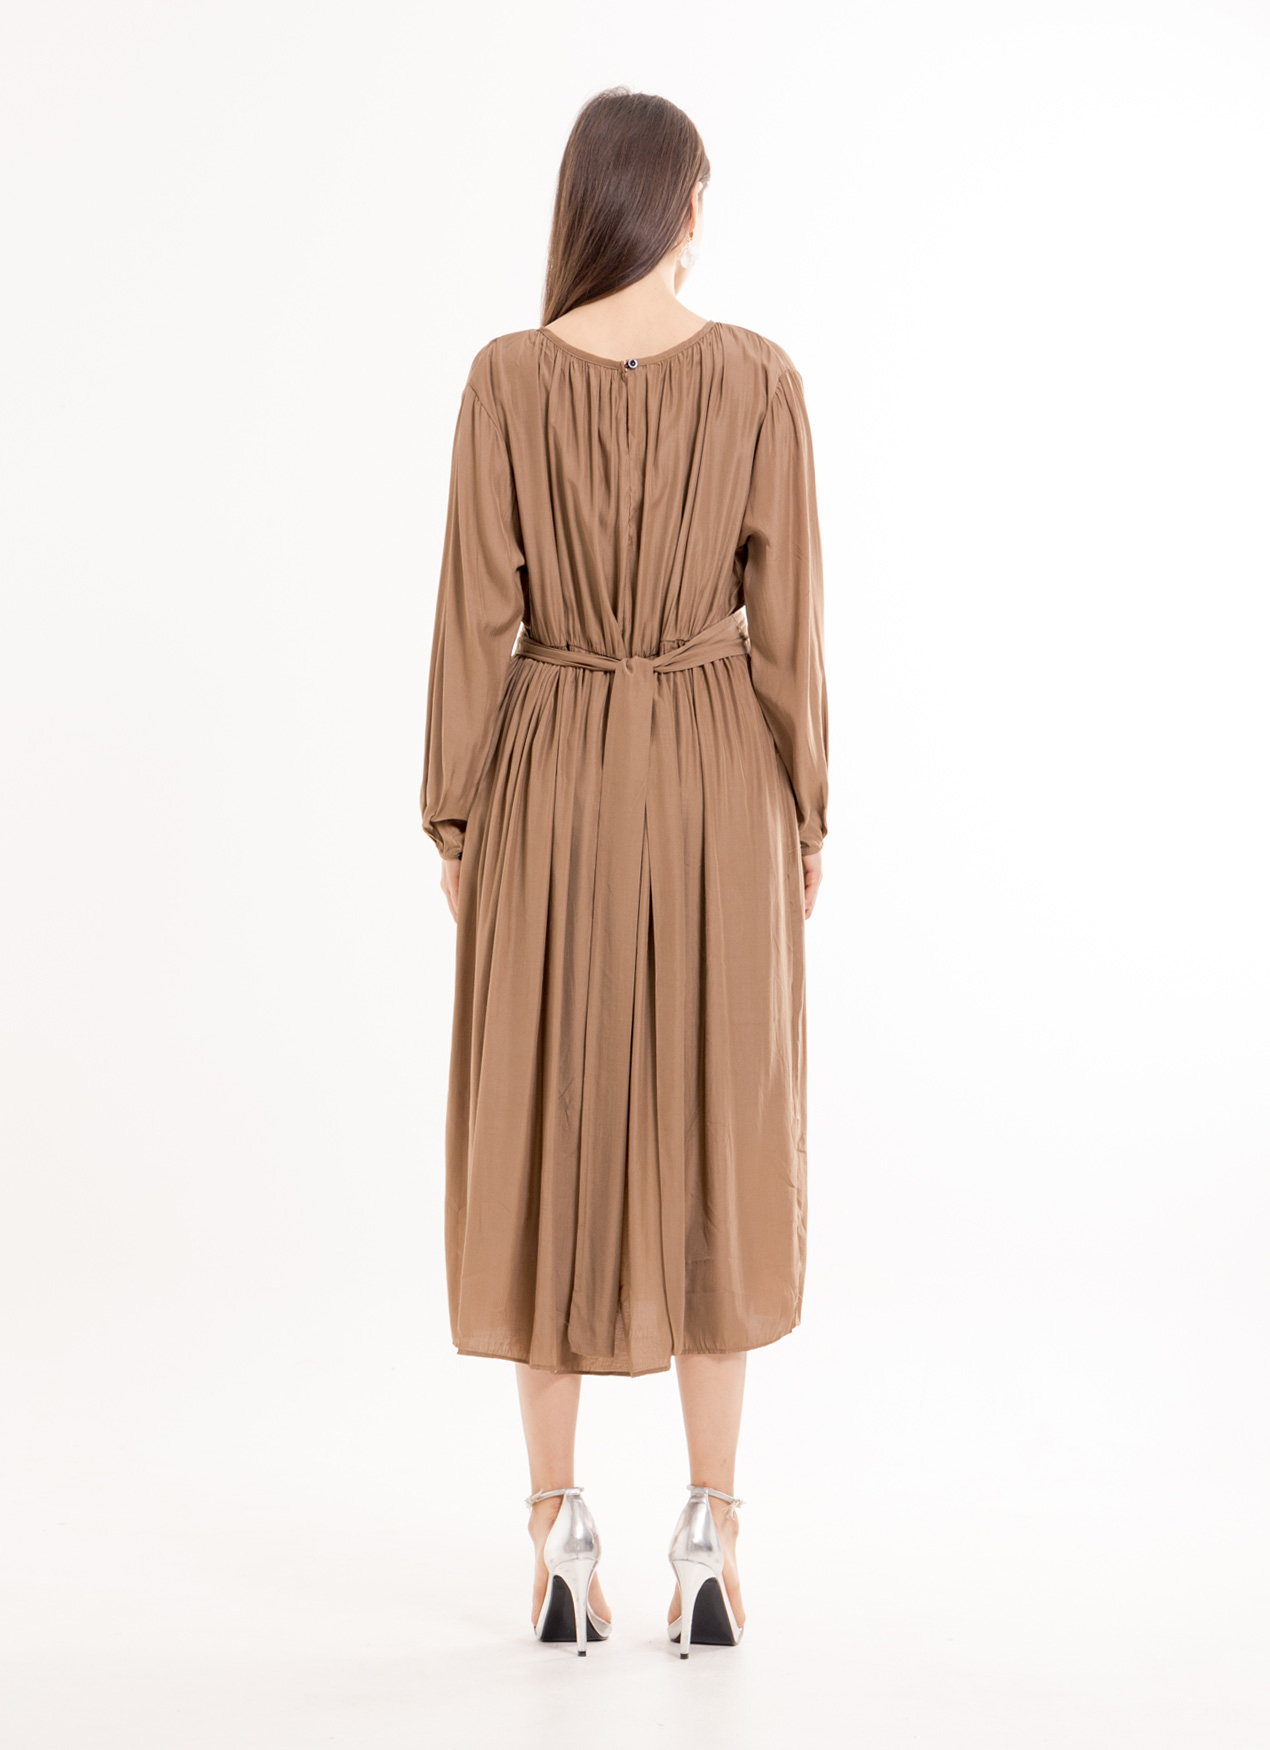 BOWN Libby Dress - Brown